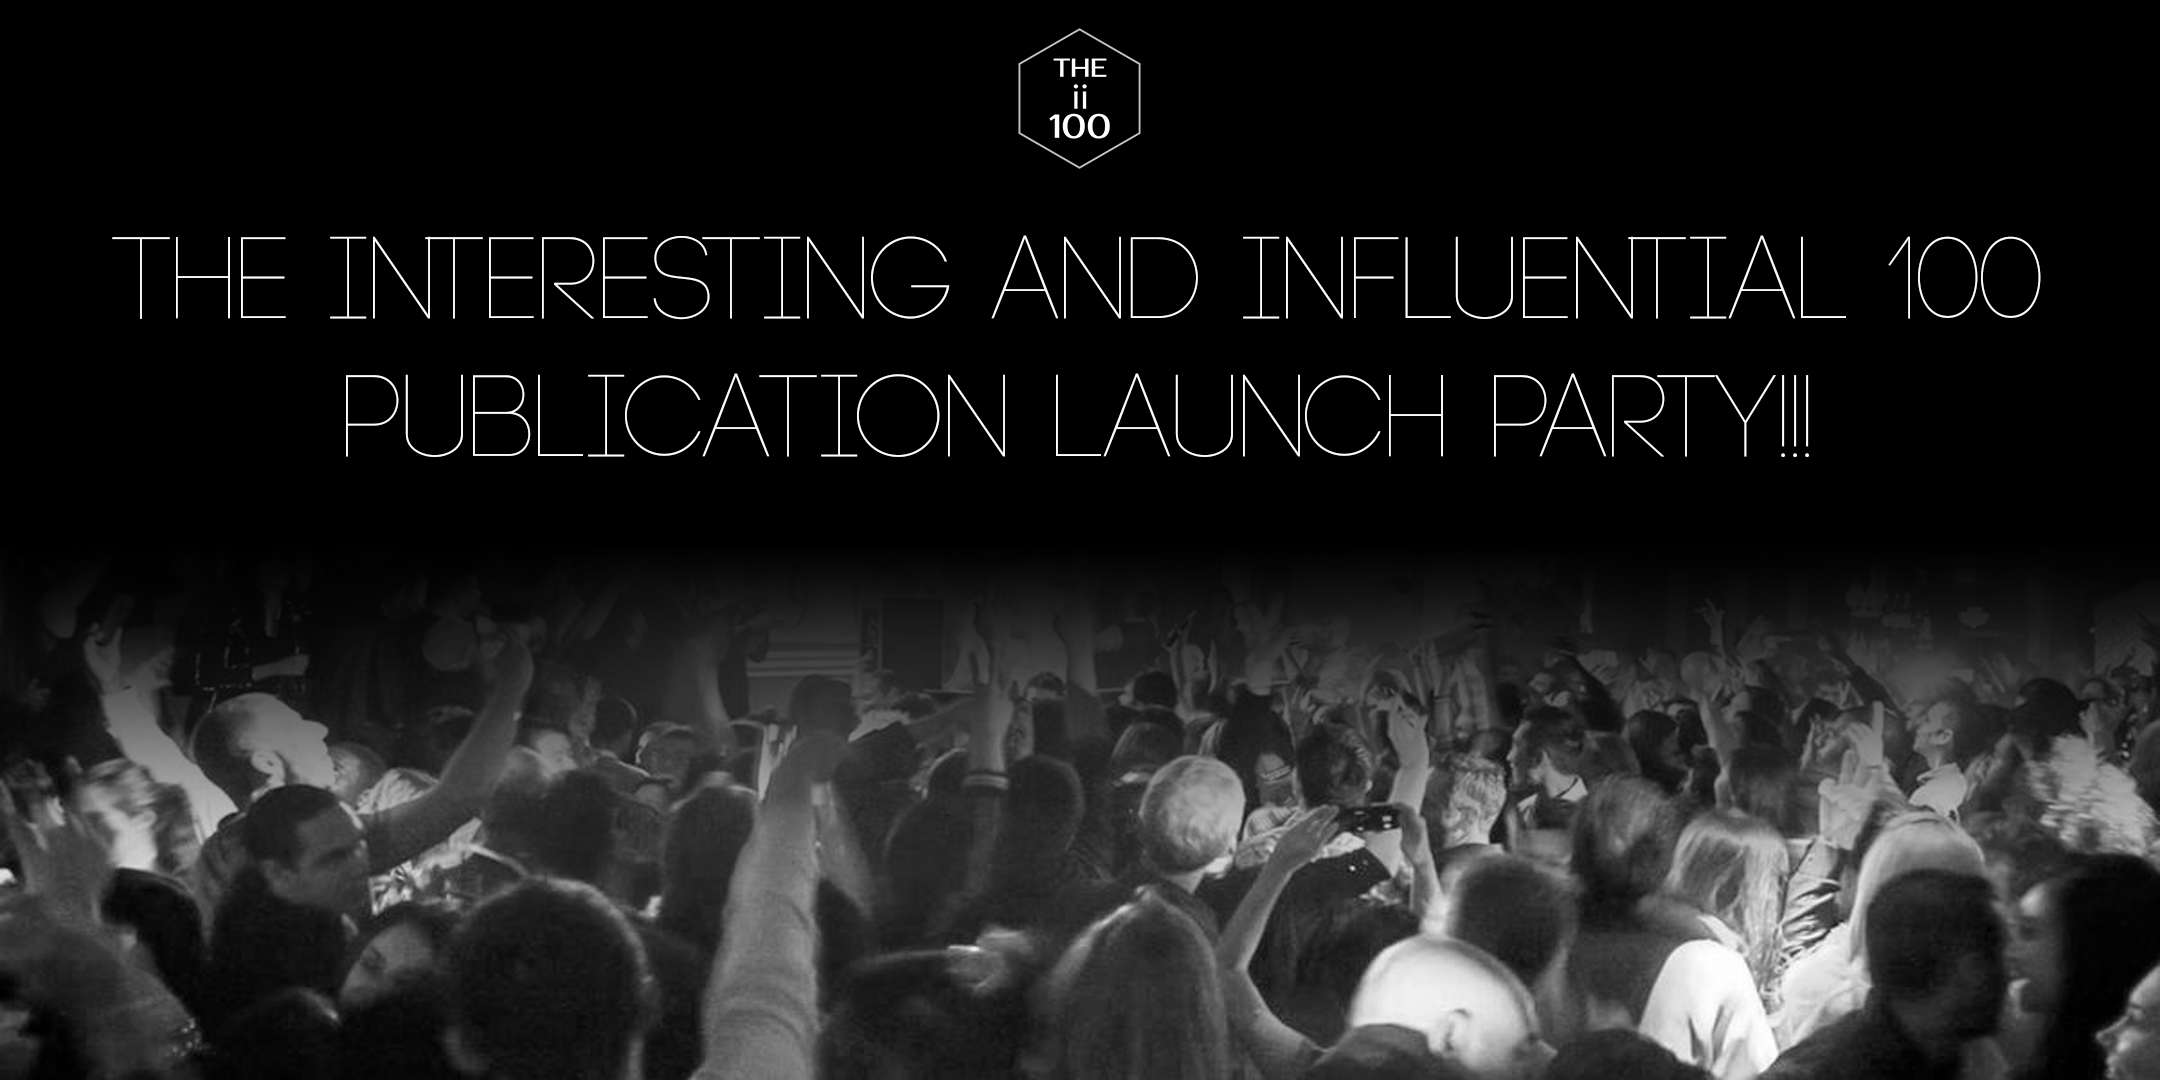 The Interesting and Influential 100 Magazine (The ii 100) Launch Party!